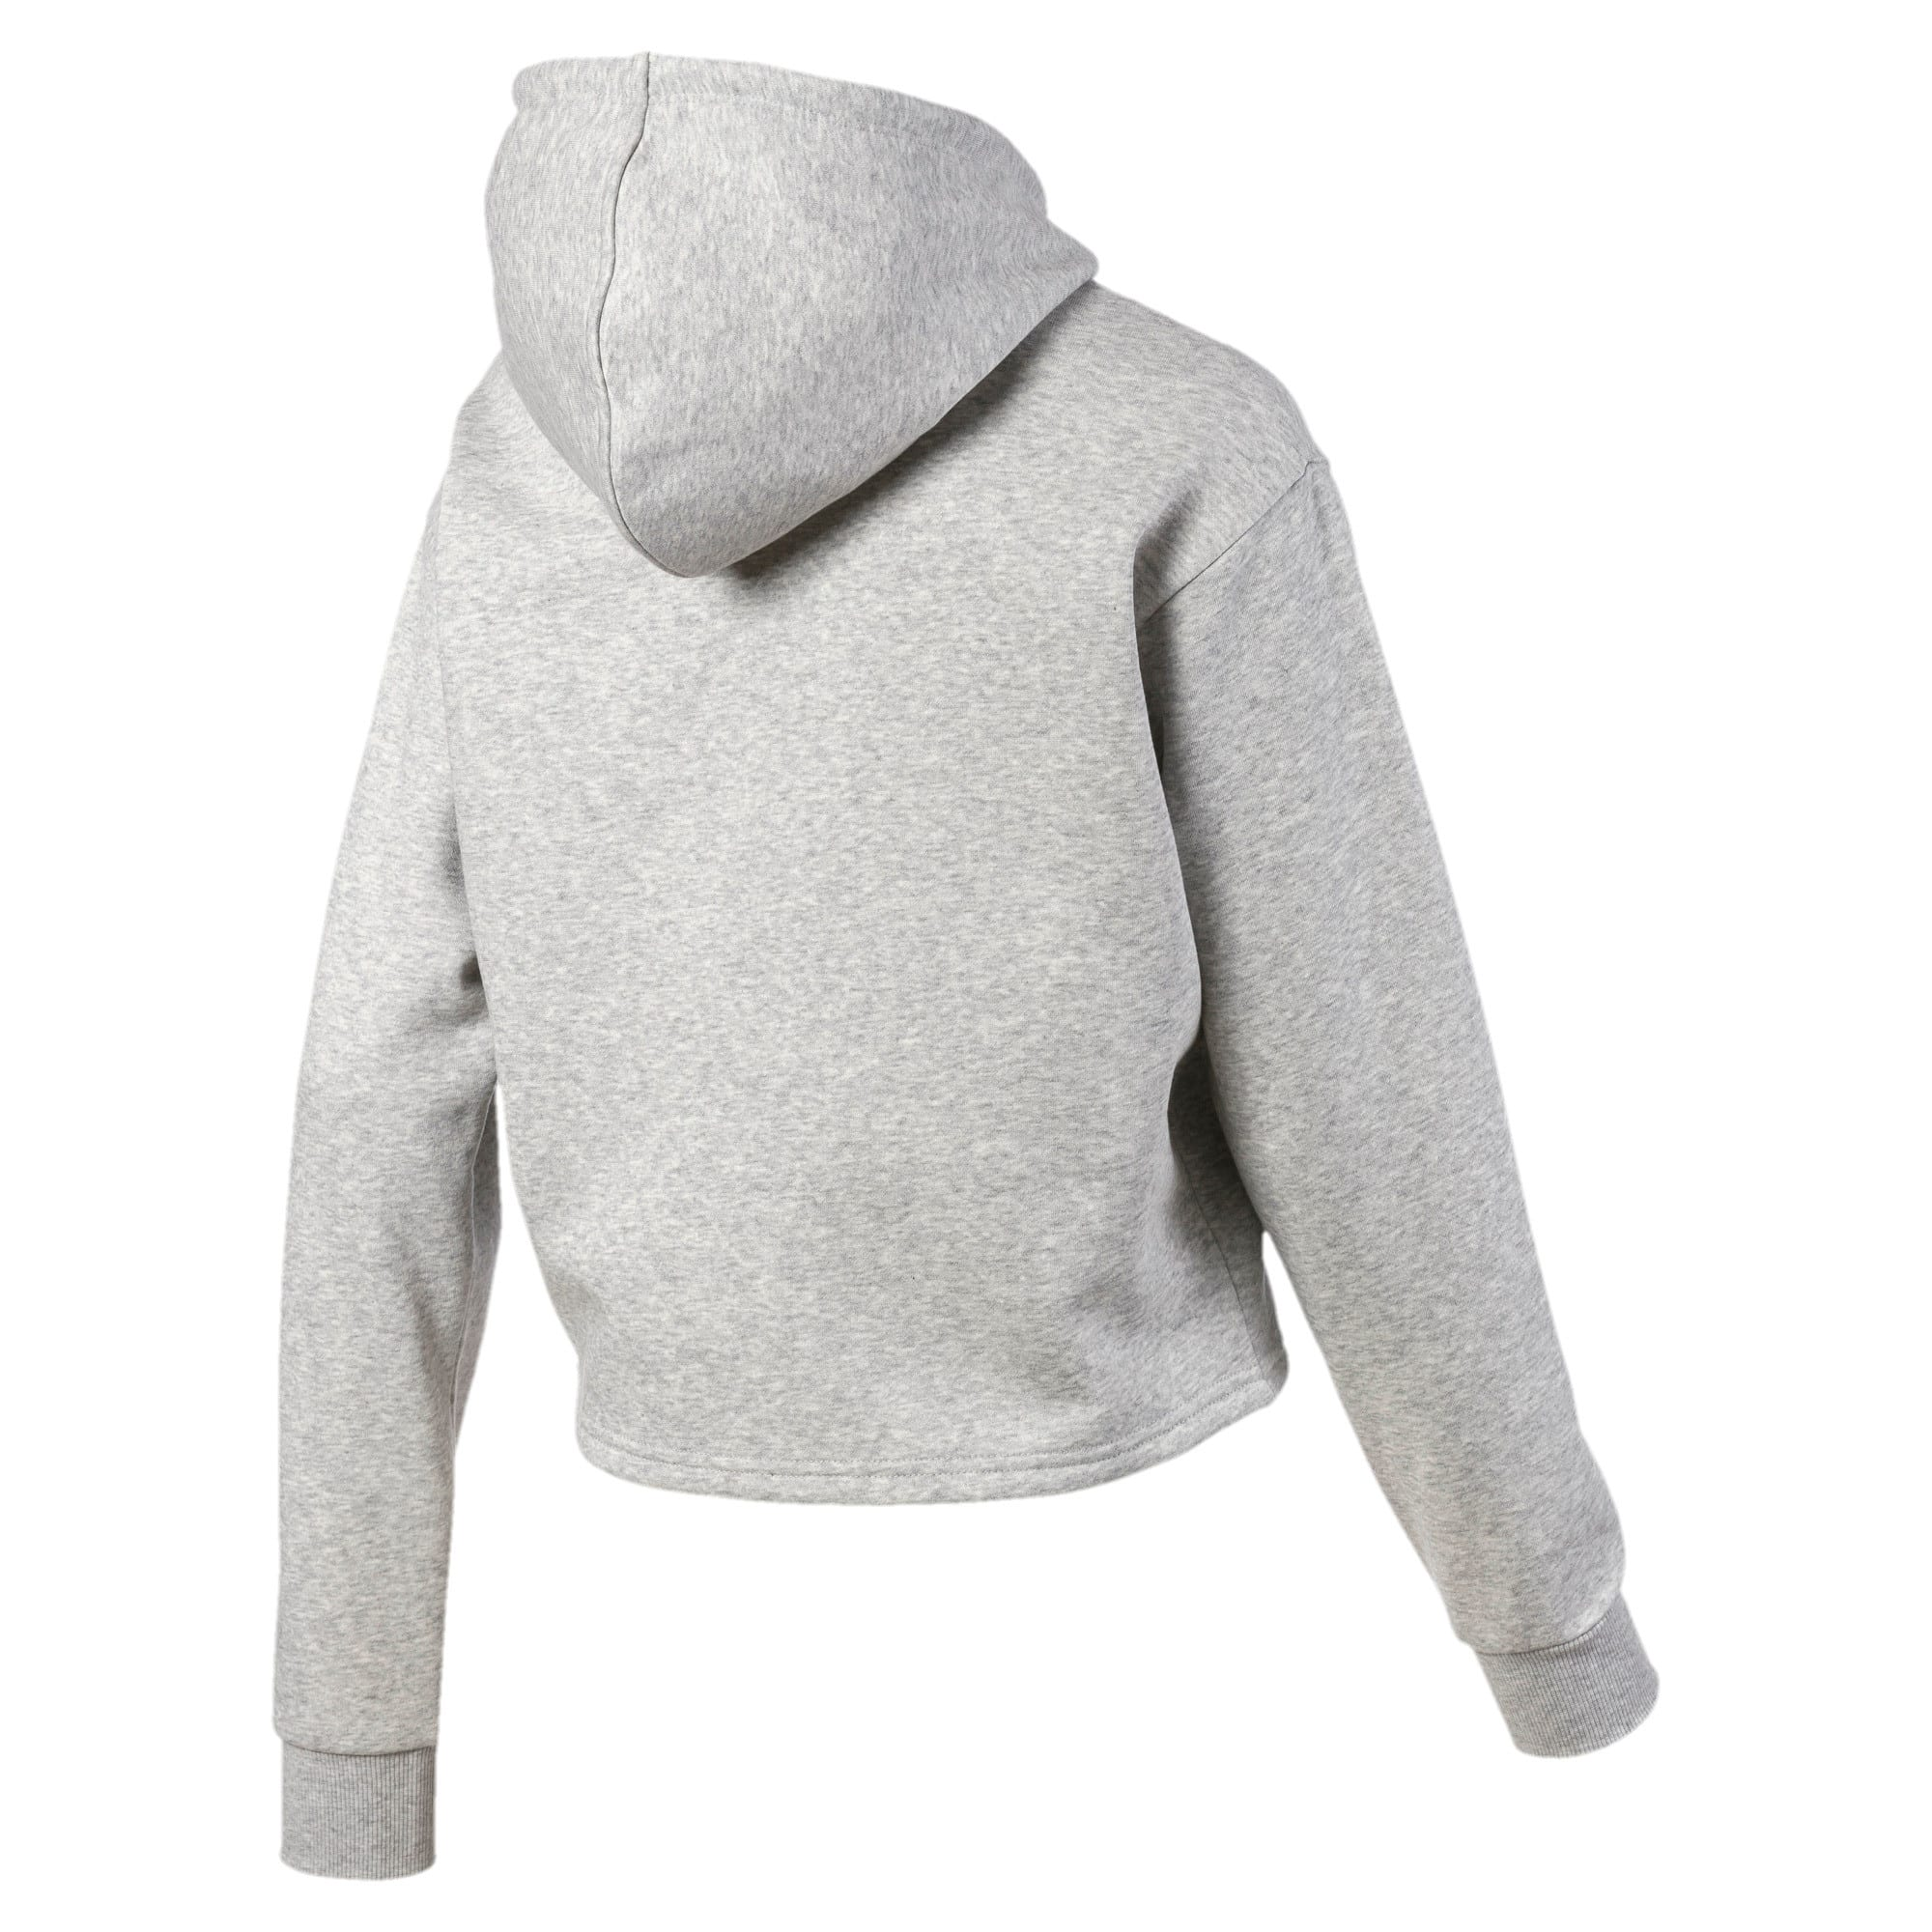 Thumbnail 5 of Elevated Essentials Cropped Women's Hoodie, Light Gray Heather, medium